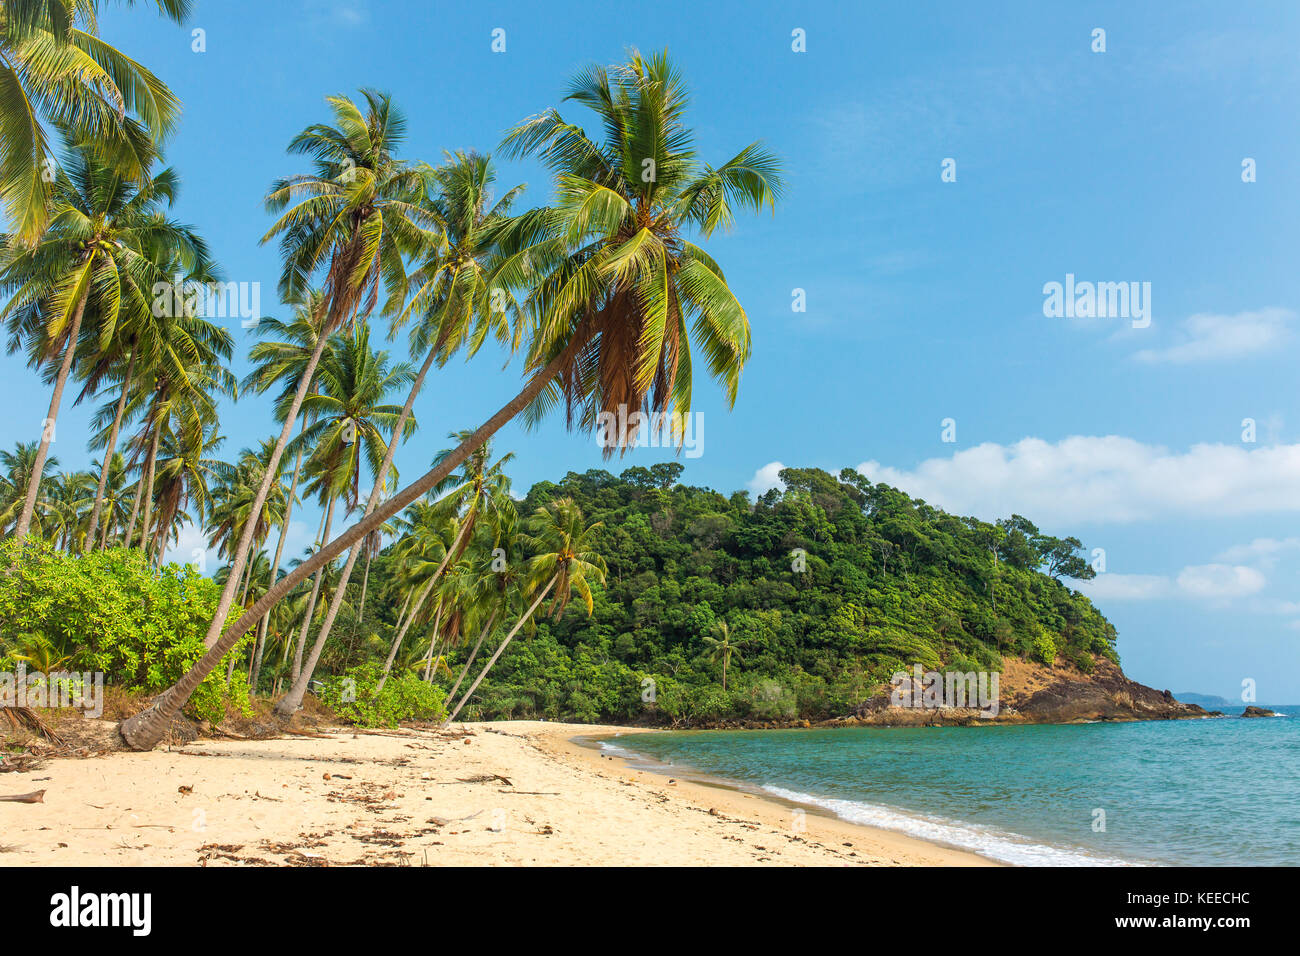 Beautiful tropical beach with palm trees on Koh Chang island in Thailand - Stock Image